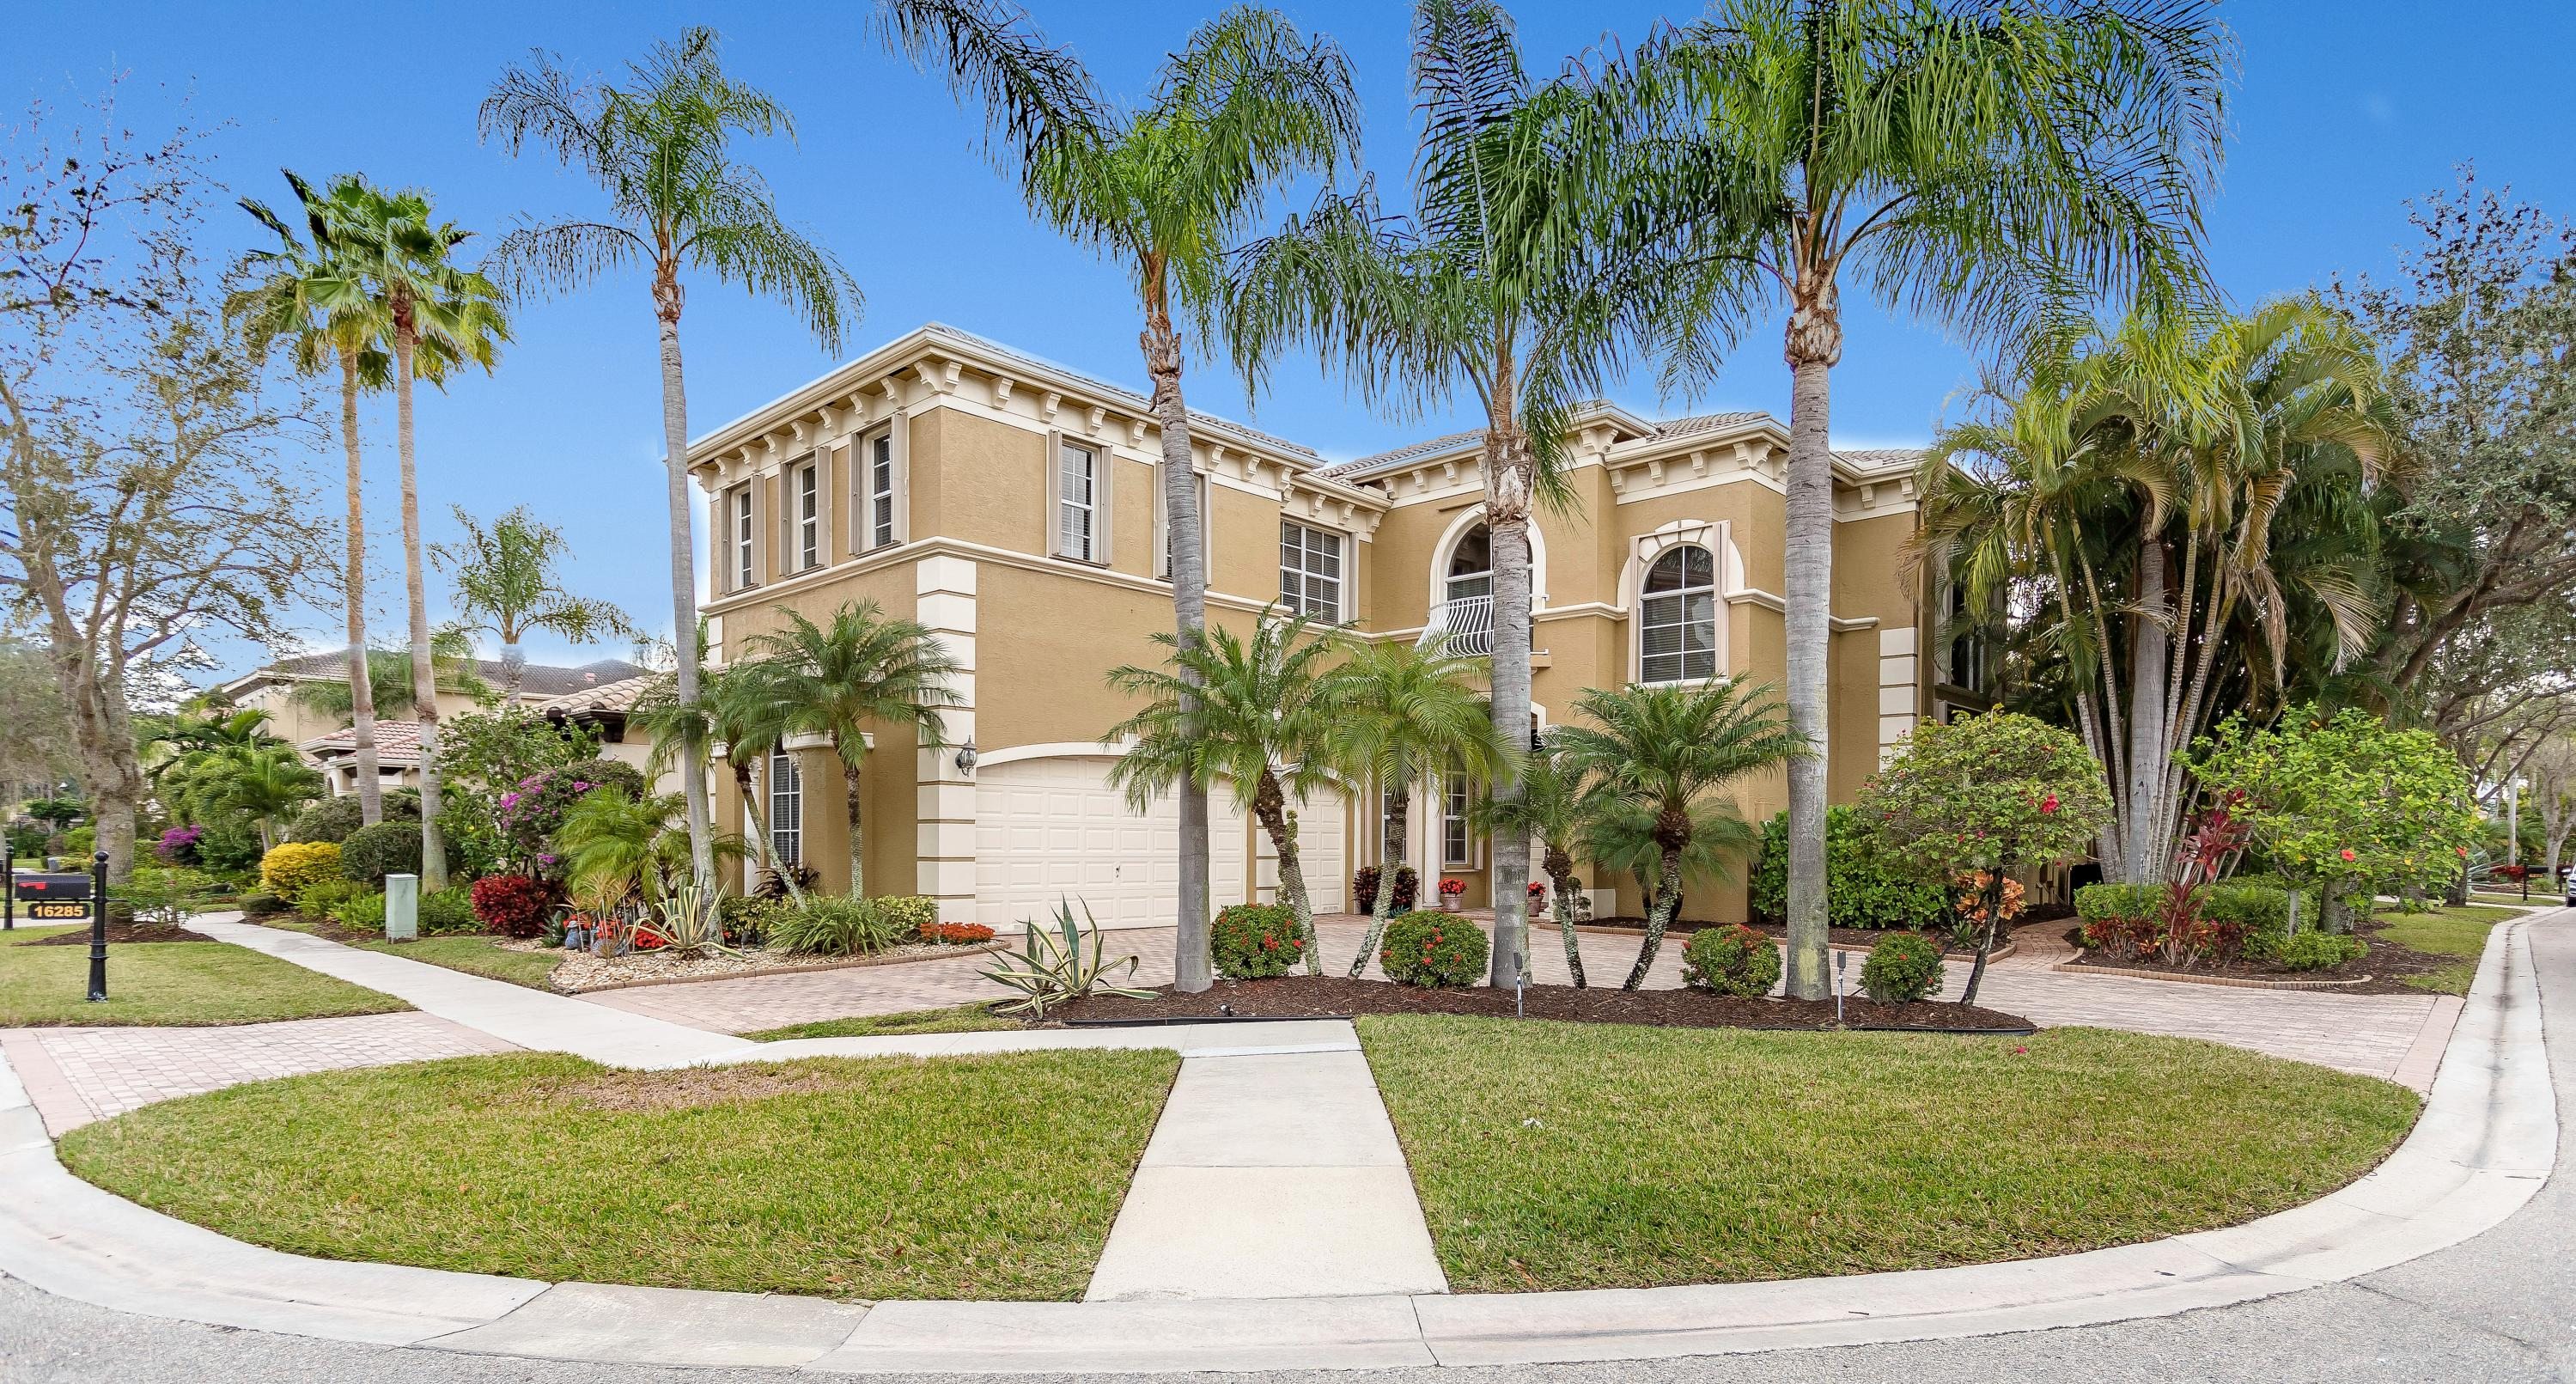 16285 Via Venetia, Delray Beach, Florida 33484, 5 Bedrooms Bedrooms, ,4 BathroomsBathrooms,Single Family,For Sale,Via Venetia,RX-10500342